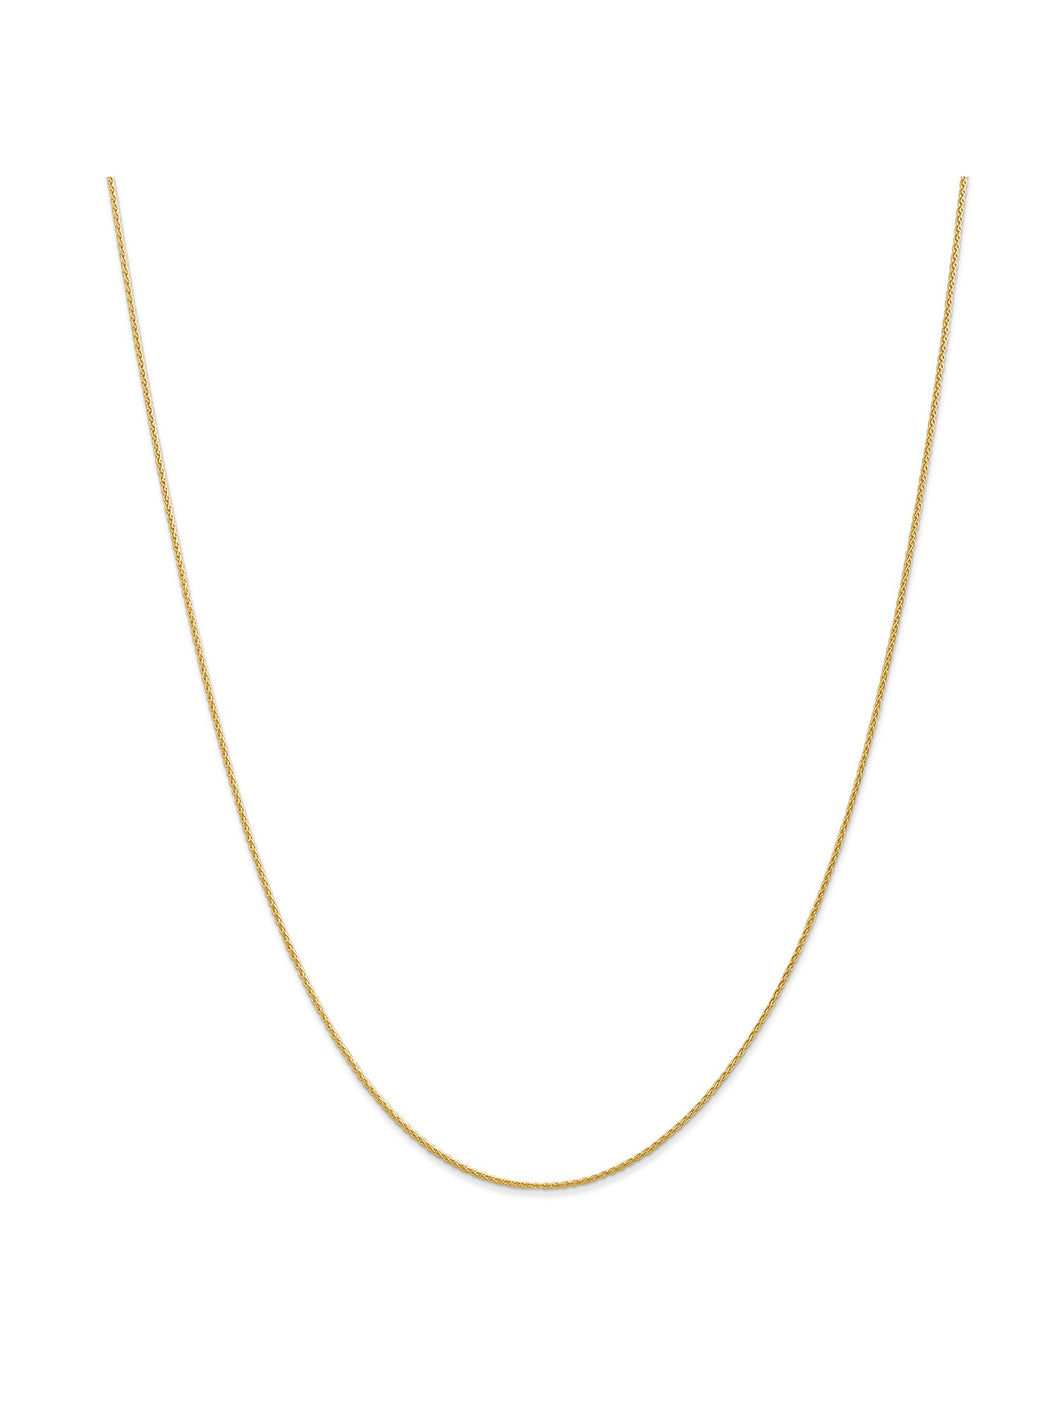 14k Yellow Gold 0.95mm Wide Wheat Chain Necklace